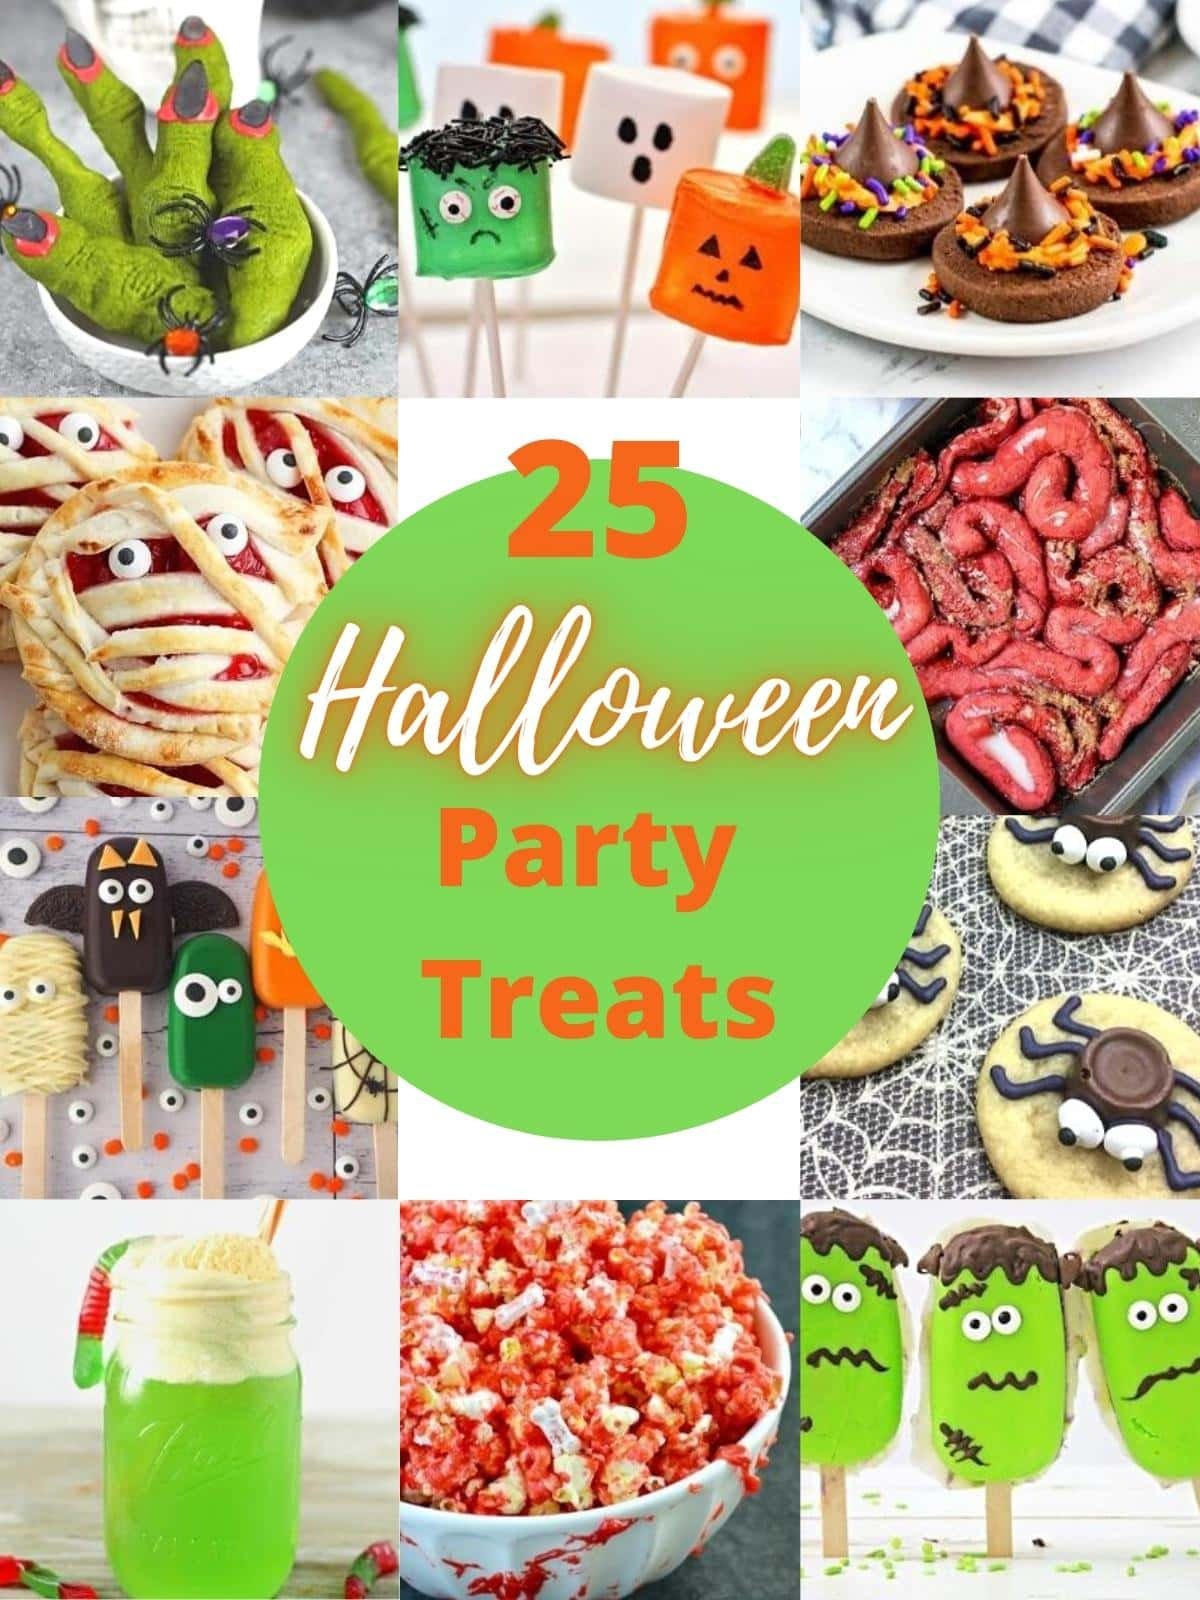 image showing pictures of 25 halloween party treats